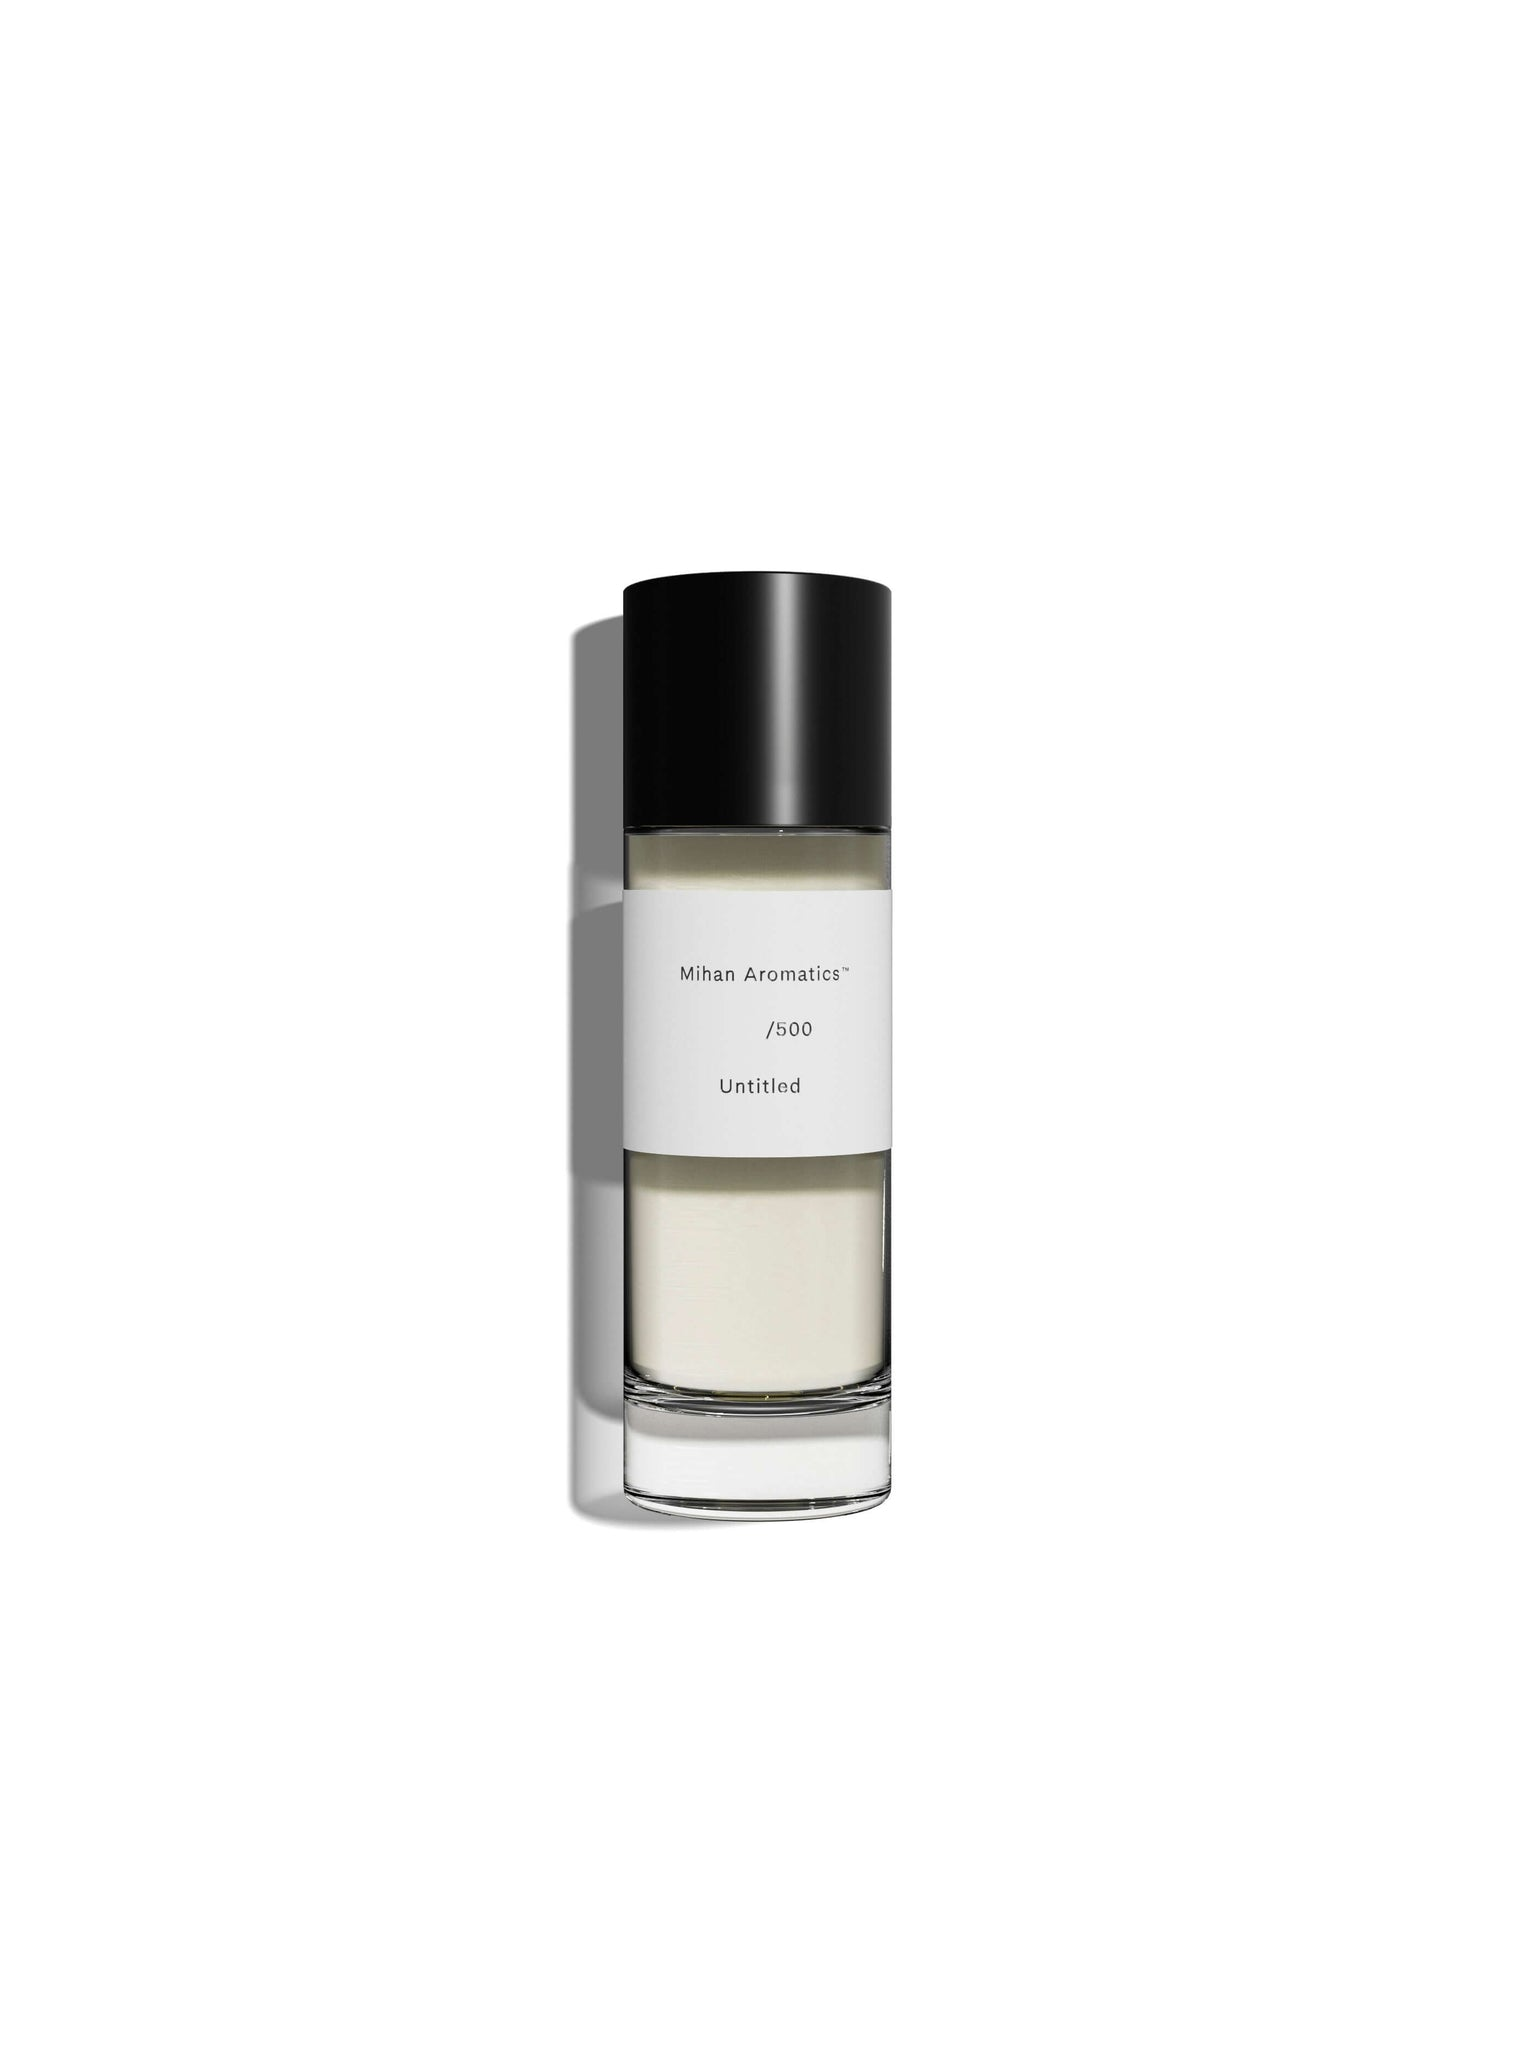 Mihan Aromatics - Untitled  30ml - Ricepaperthelabel